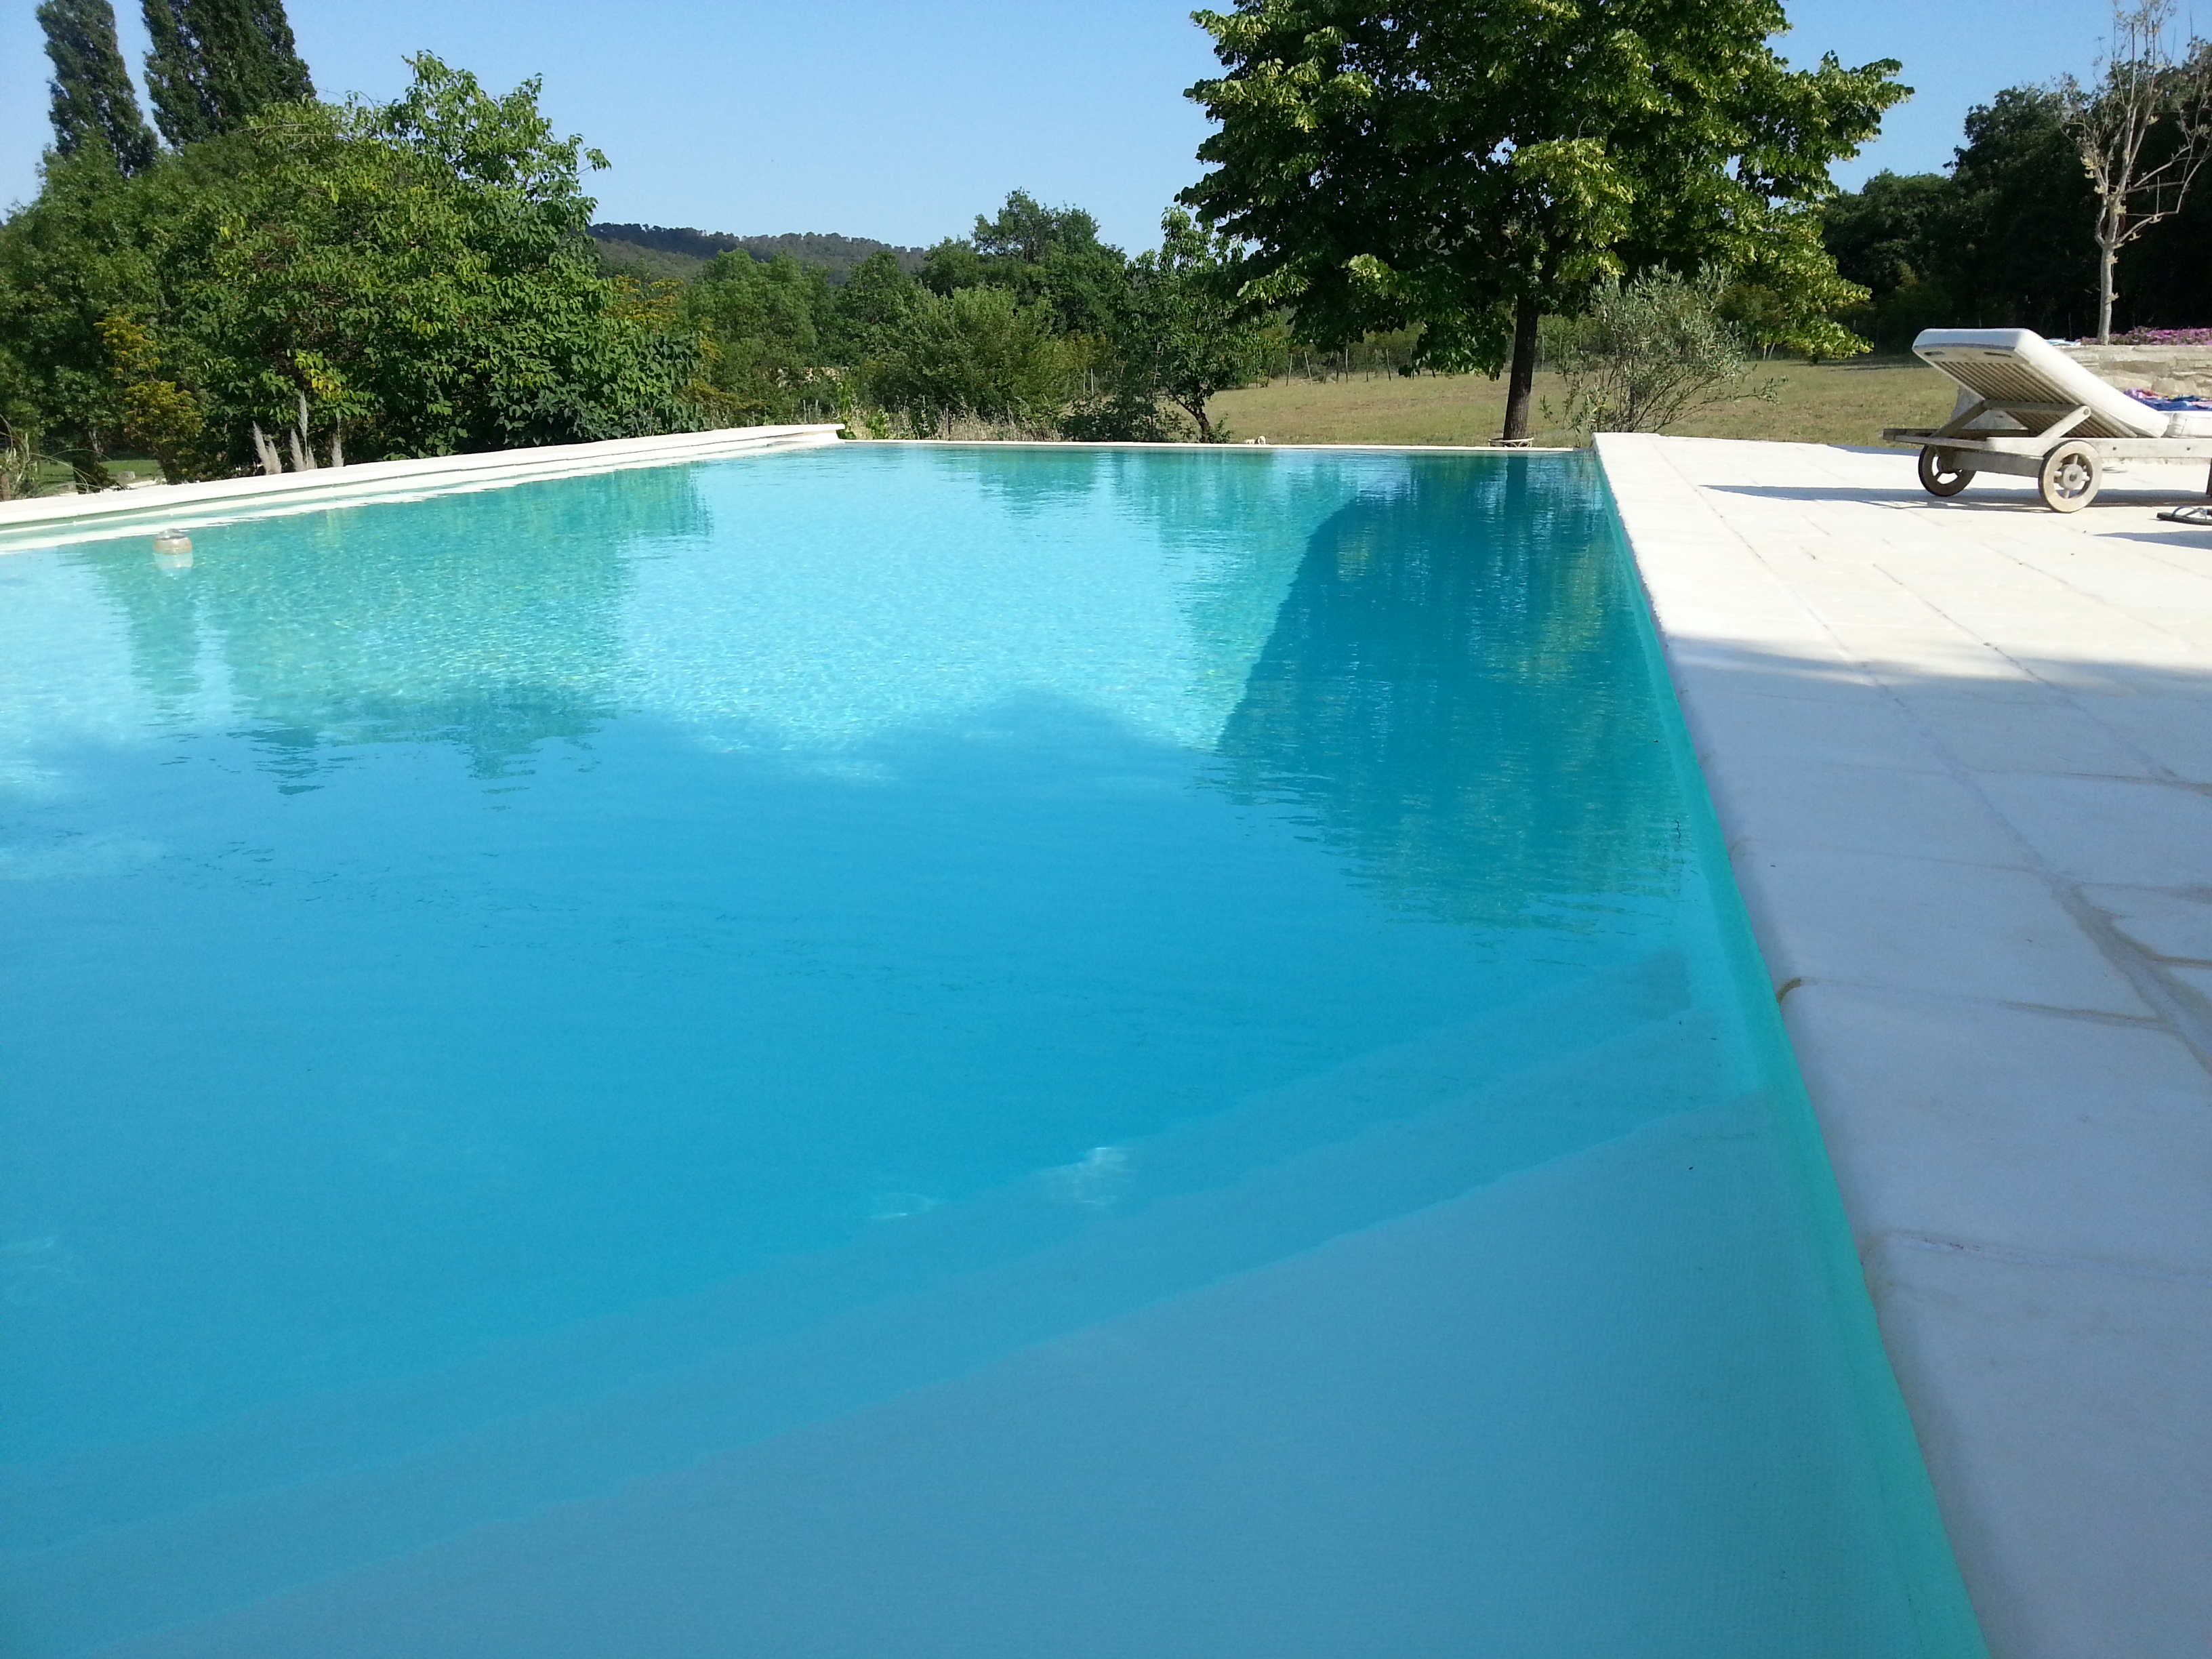 Piscine hors sol installation piscine hors sol ultra for Piscine hors sol imposable